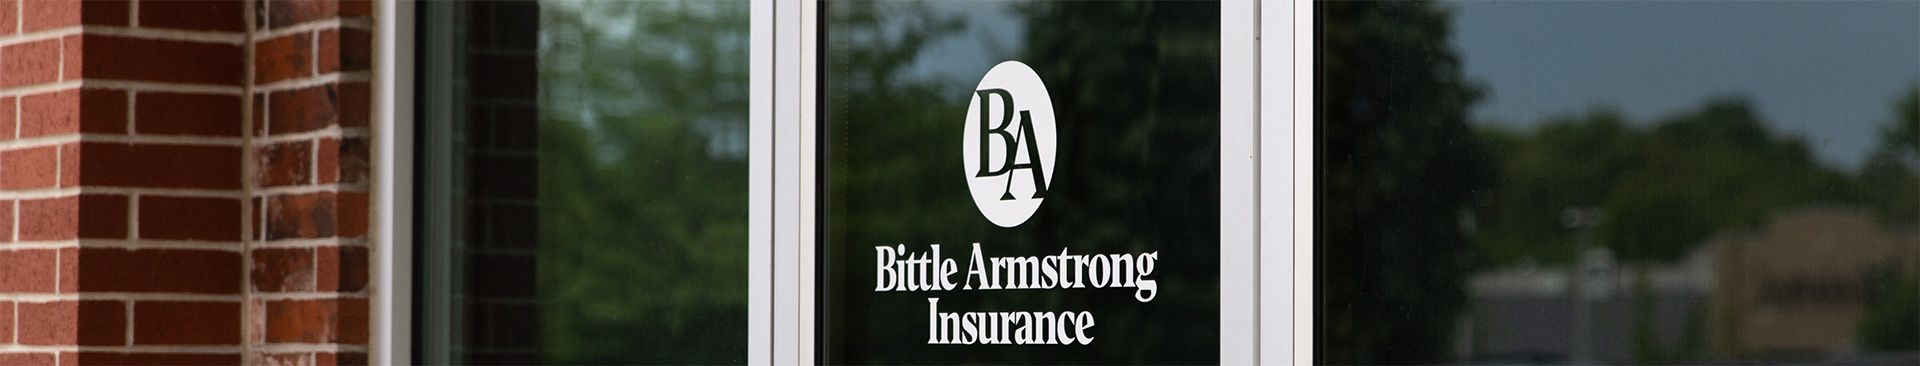 Bittle Armstrong Insurance front door logo